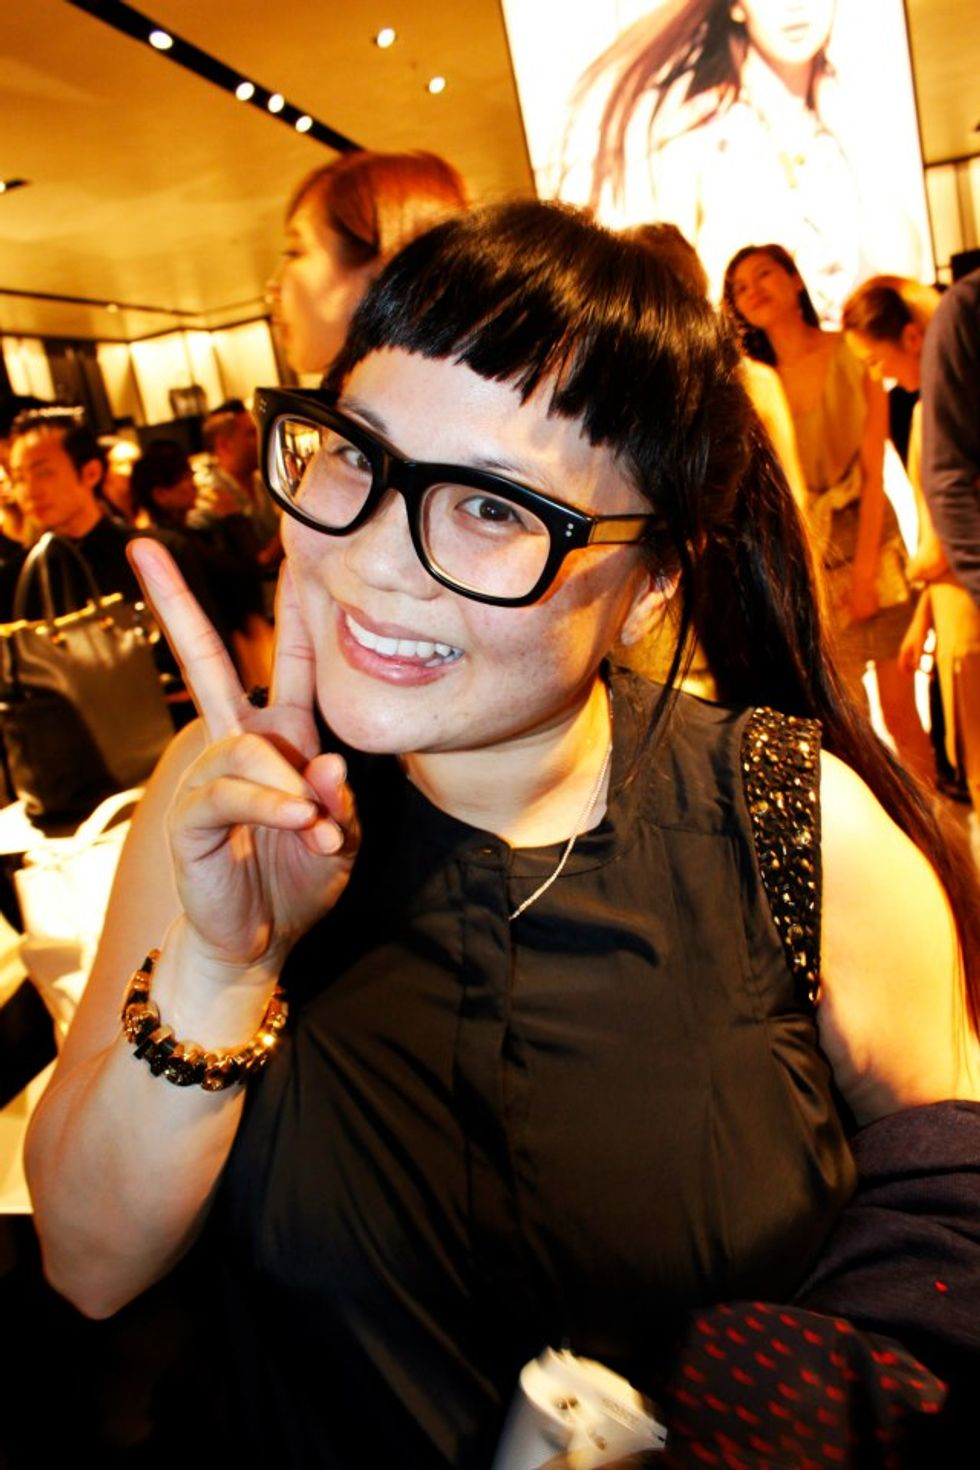 A Tokyo Nightlife Maven Tells Us Where the Cool Kids Flock to Party